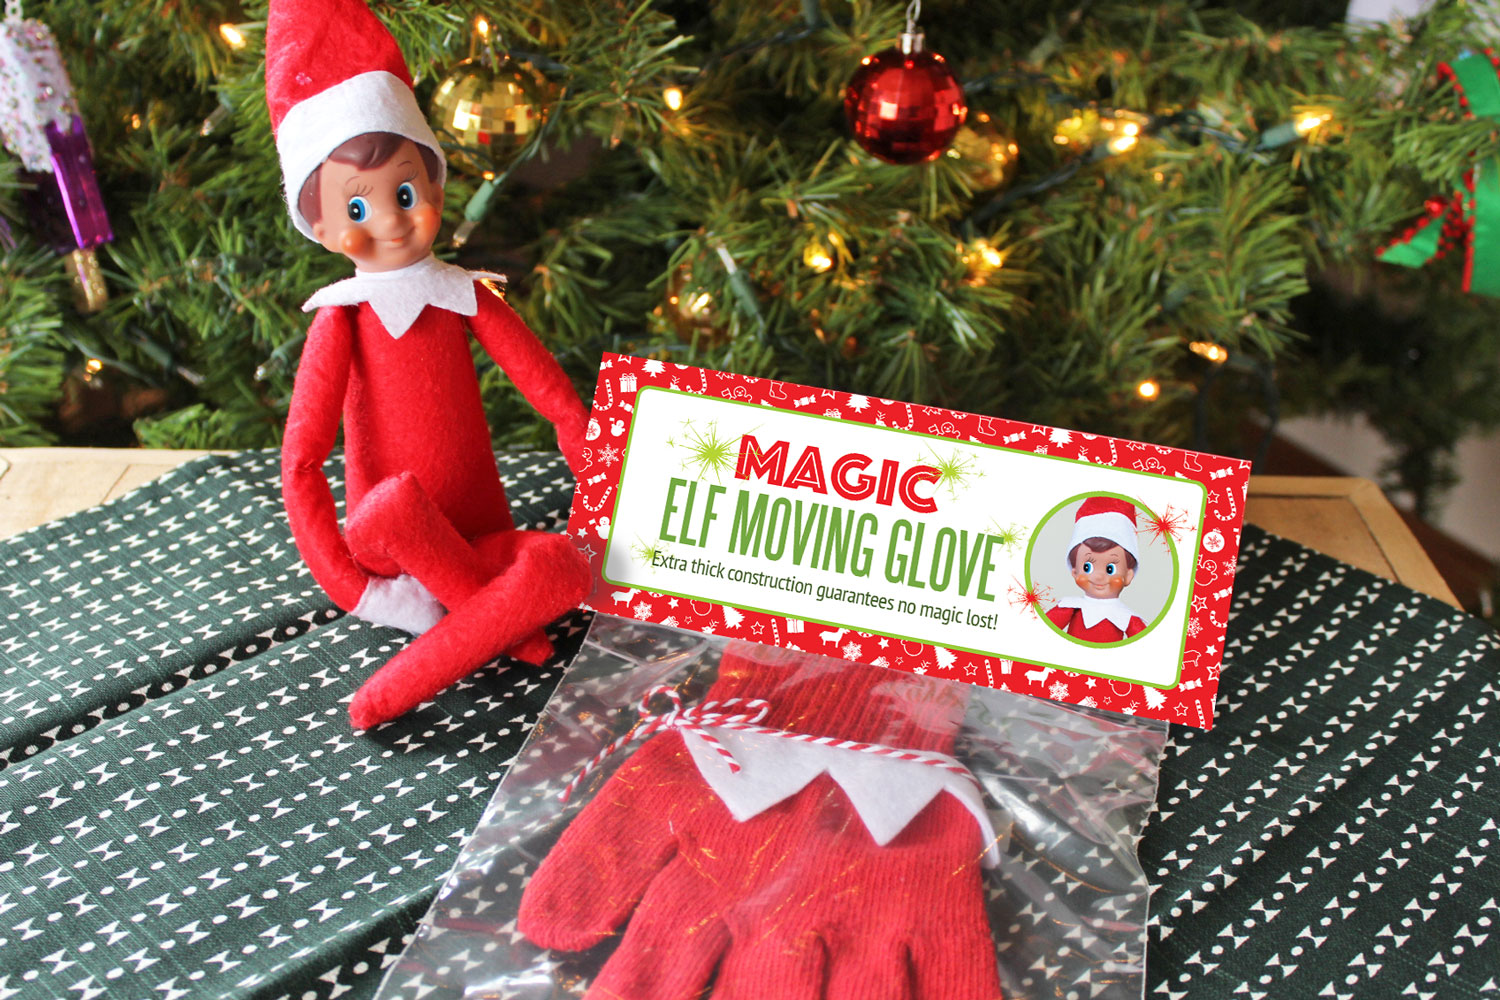 Diy magic elf on the shelf moving glove with free for Elf shelf craft show